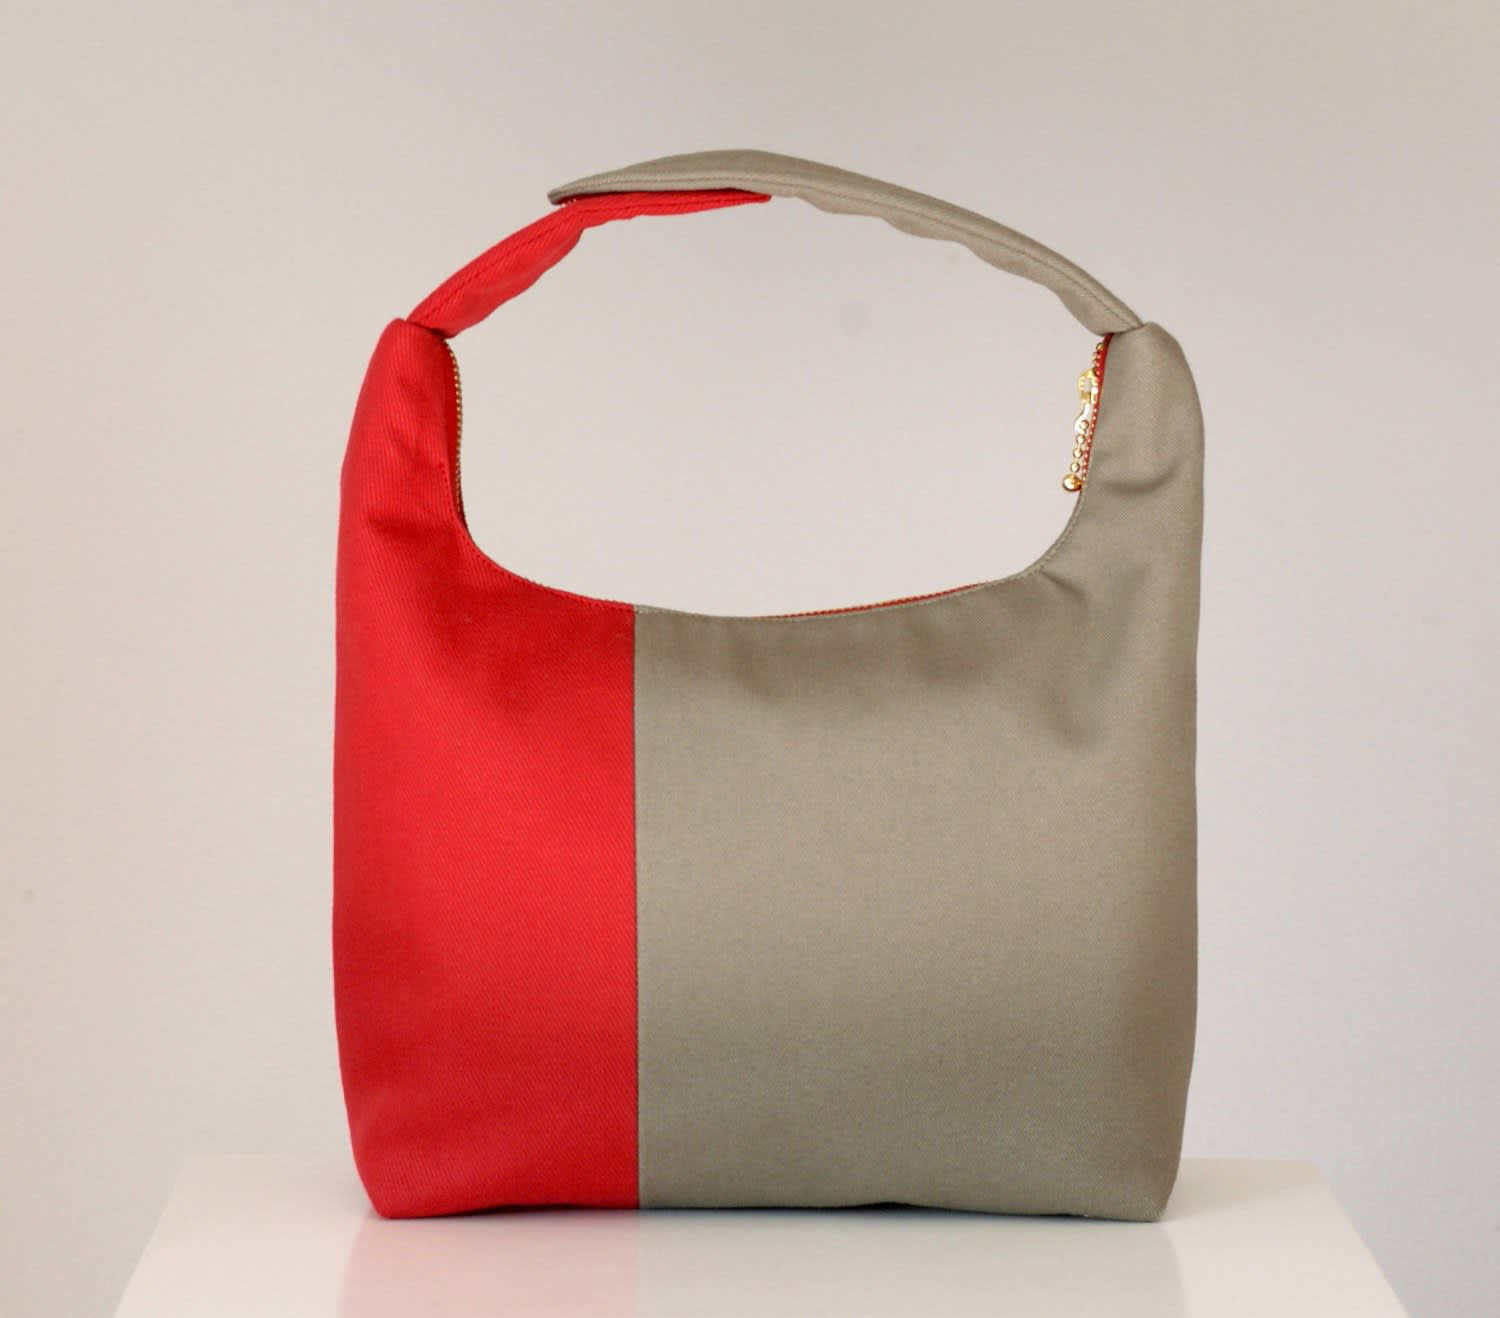 8 Favorite Lunch Bags to Brown-Bag It in Style: gallery image 2